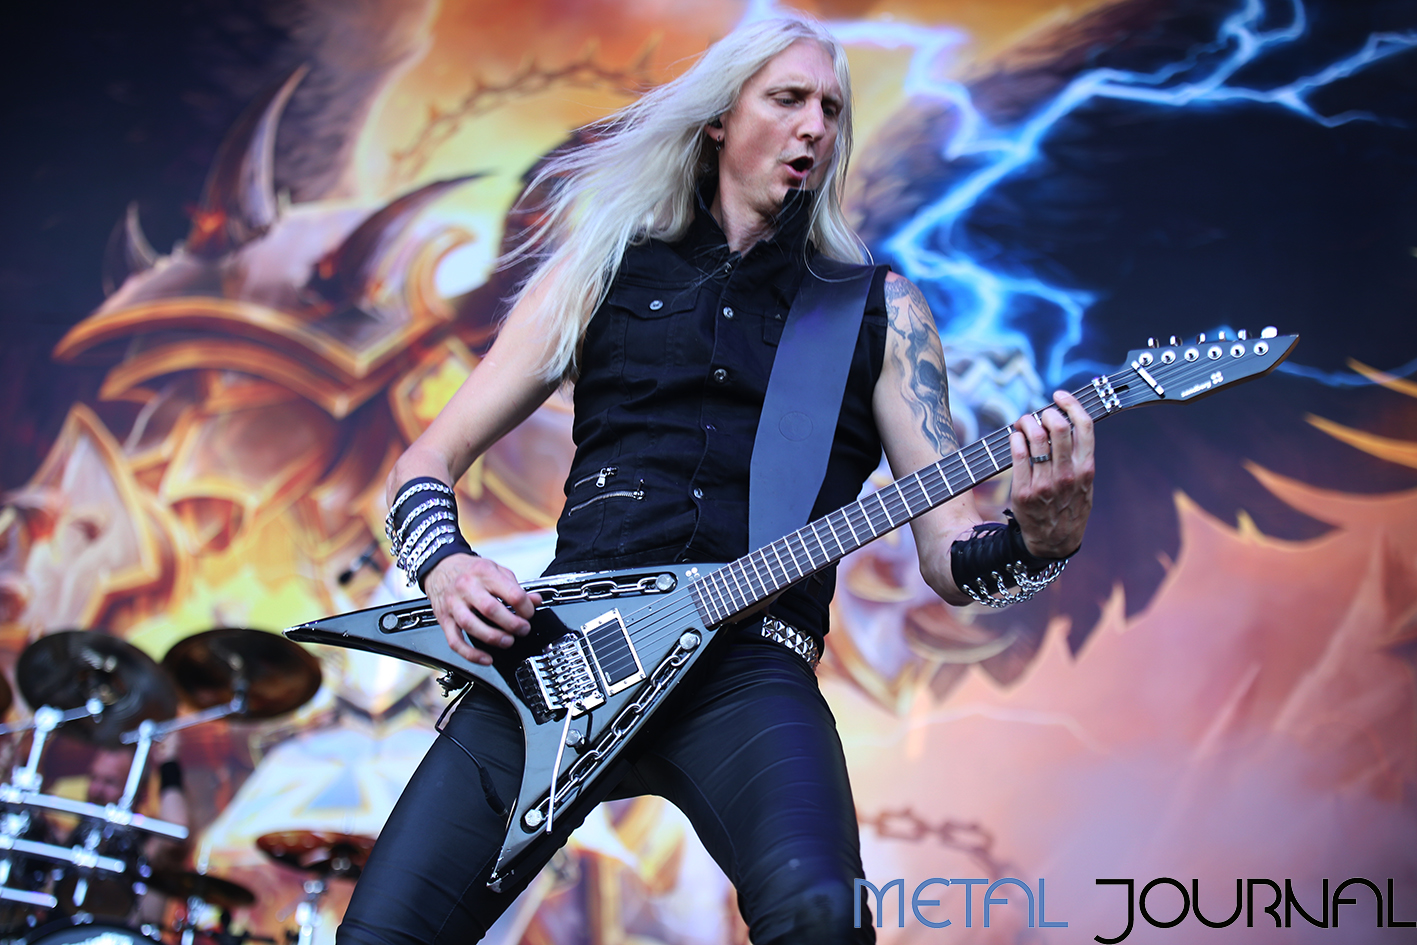 hammerfall - leyendas del rock 2019 metal journal pic 8